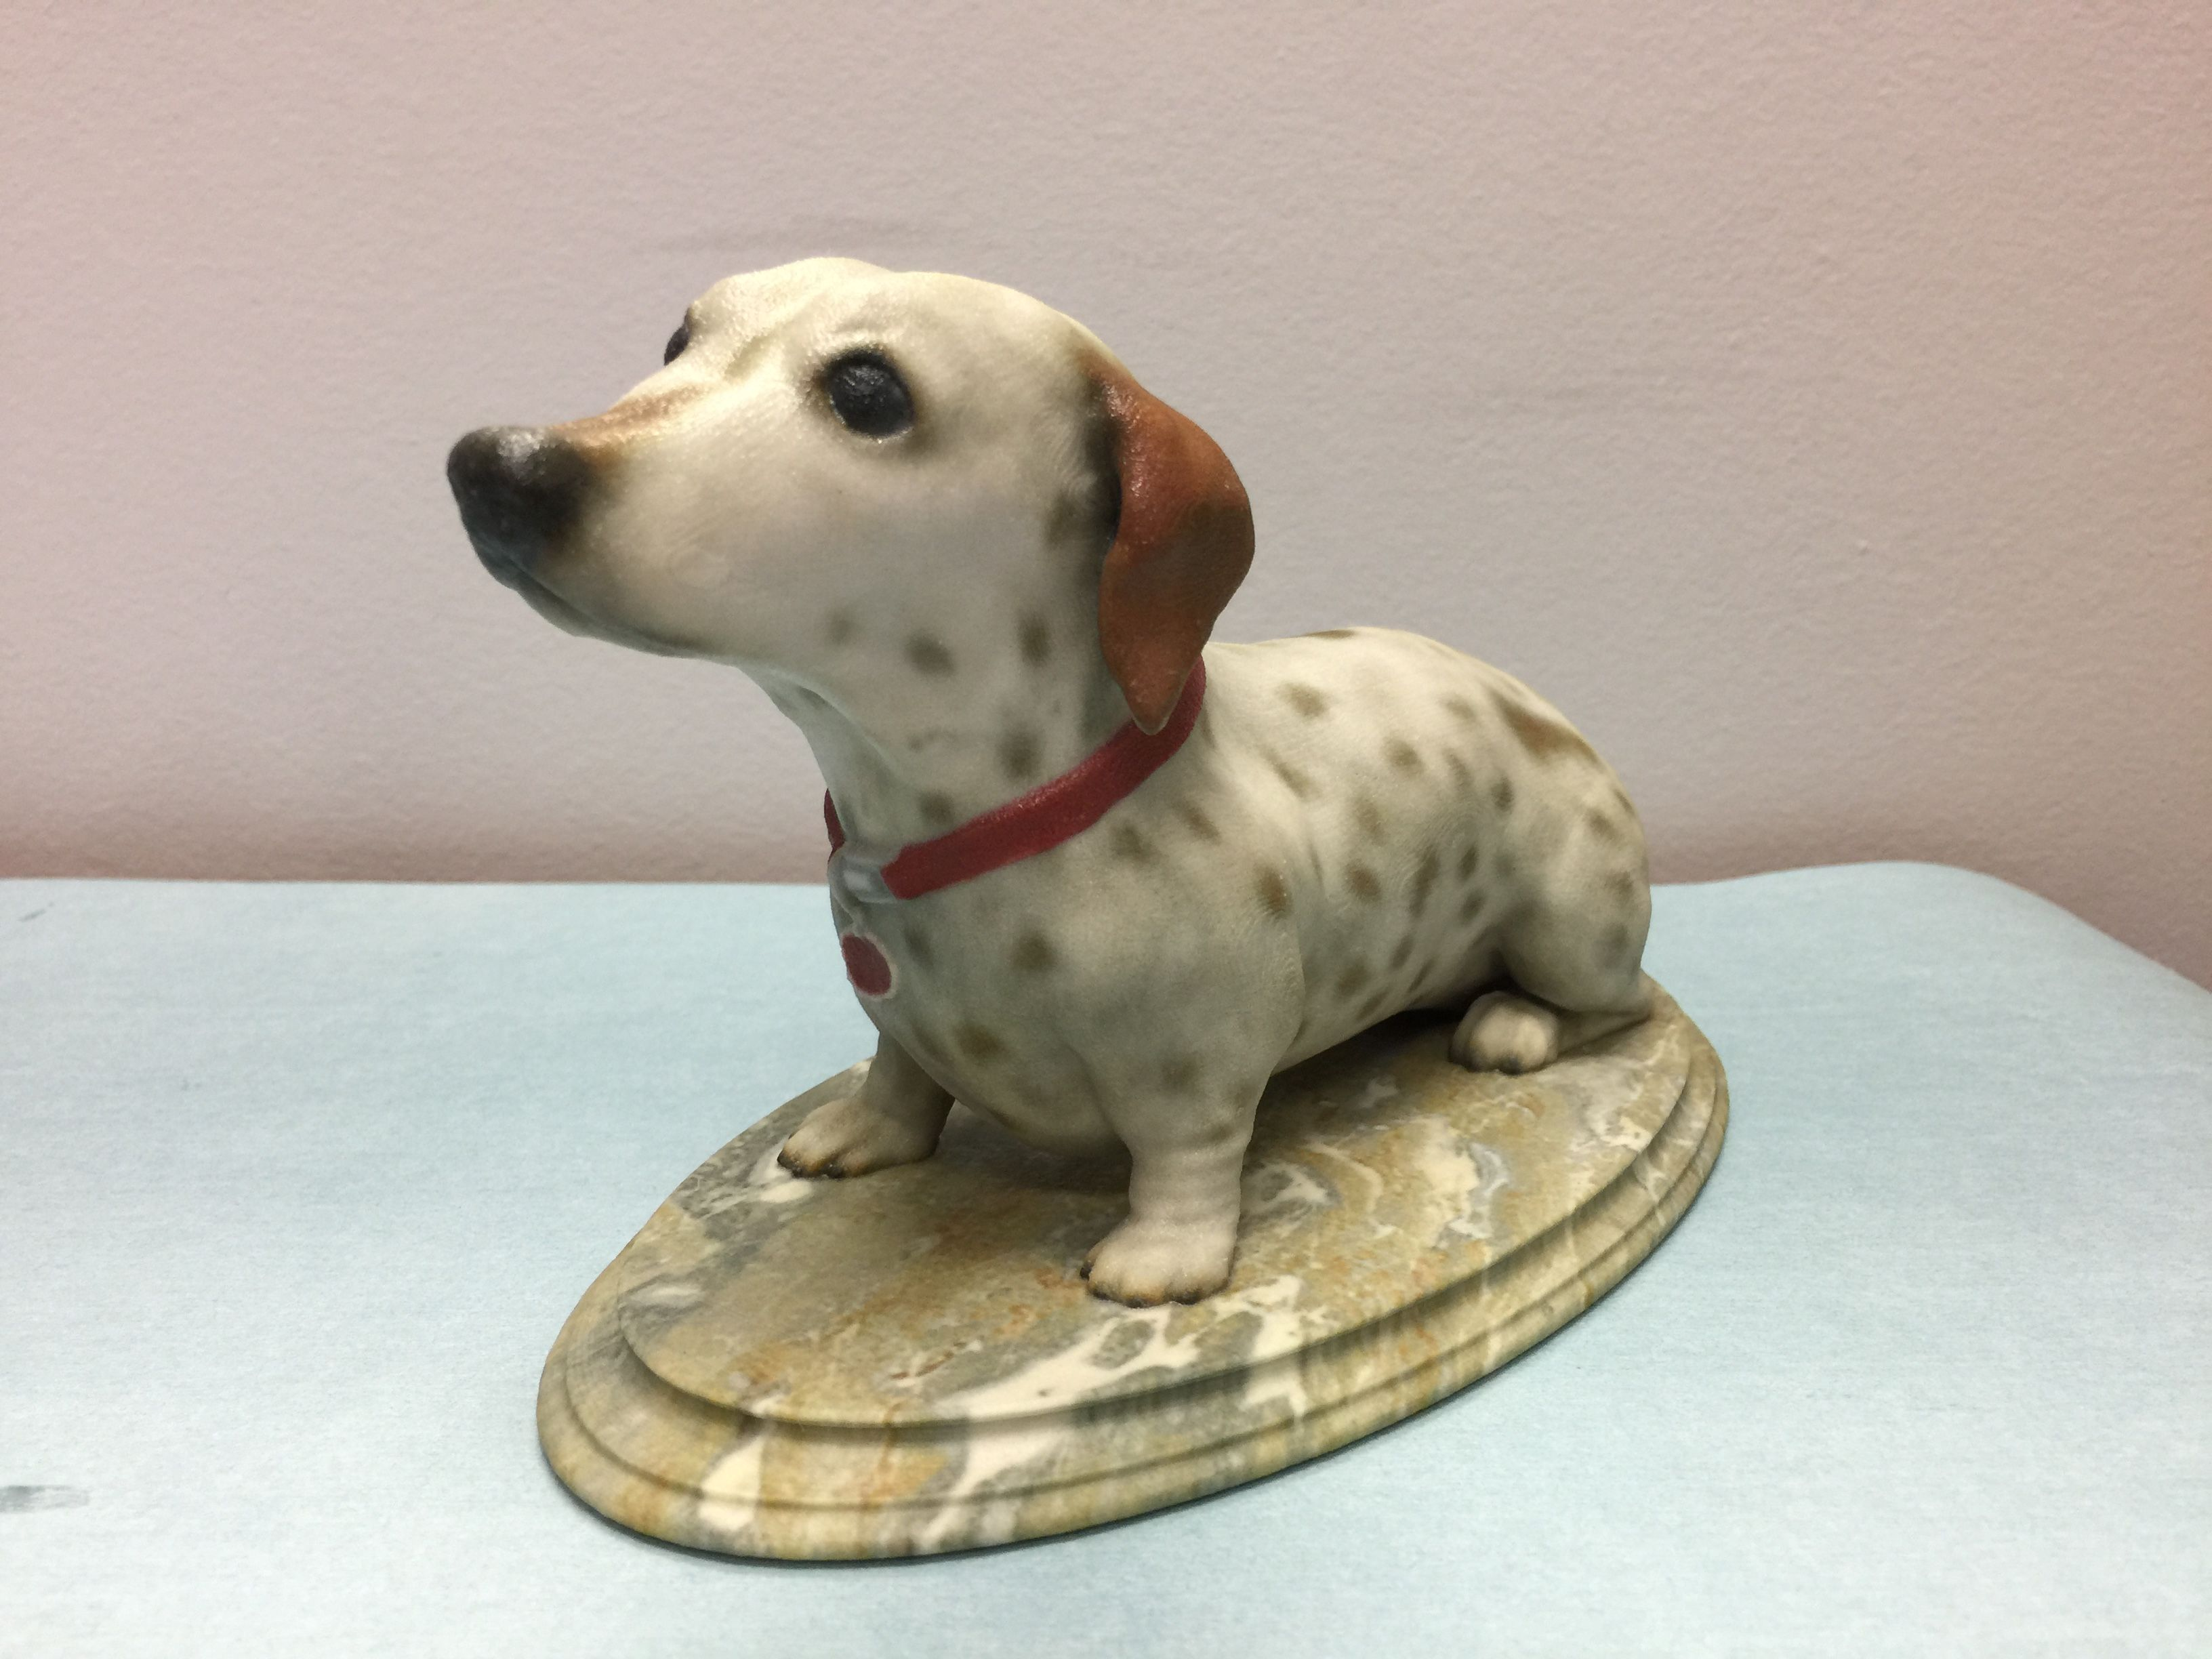 We Make 3d Selfie 3d Figurine Made Of Sandstone Just From Your Photo Family Figurine Pets Photo